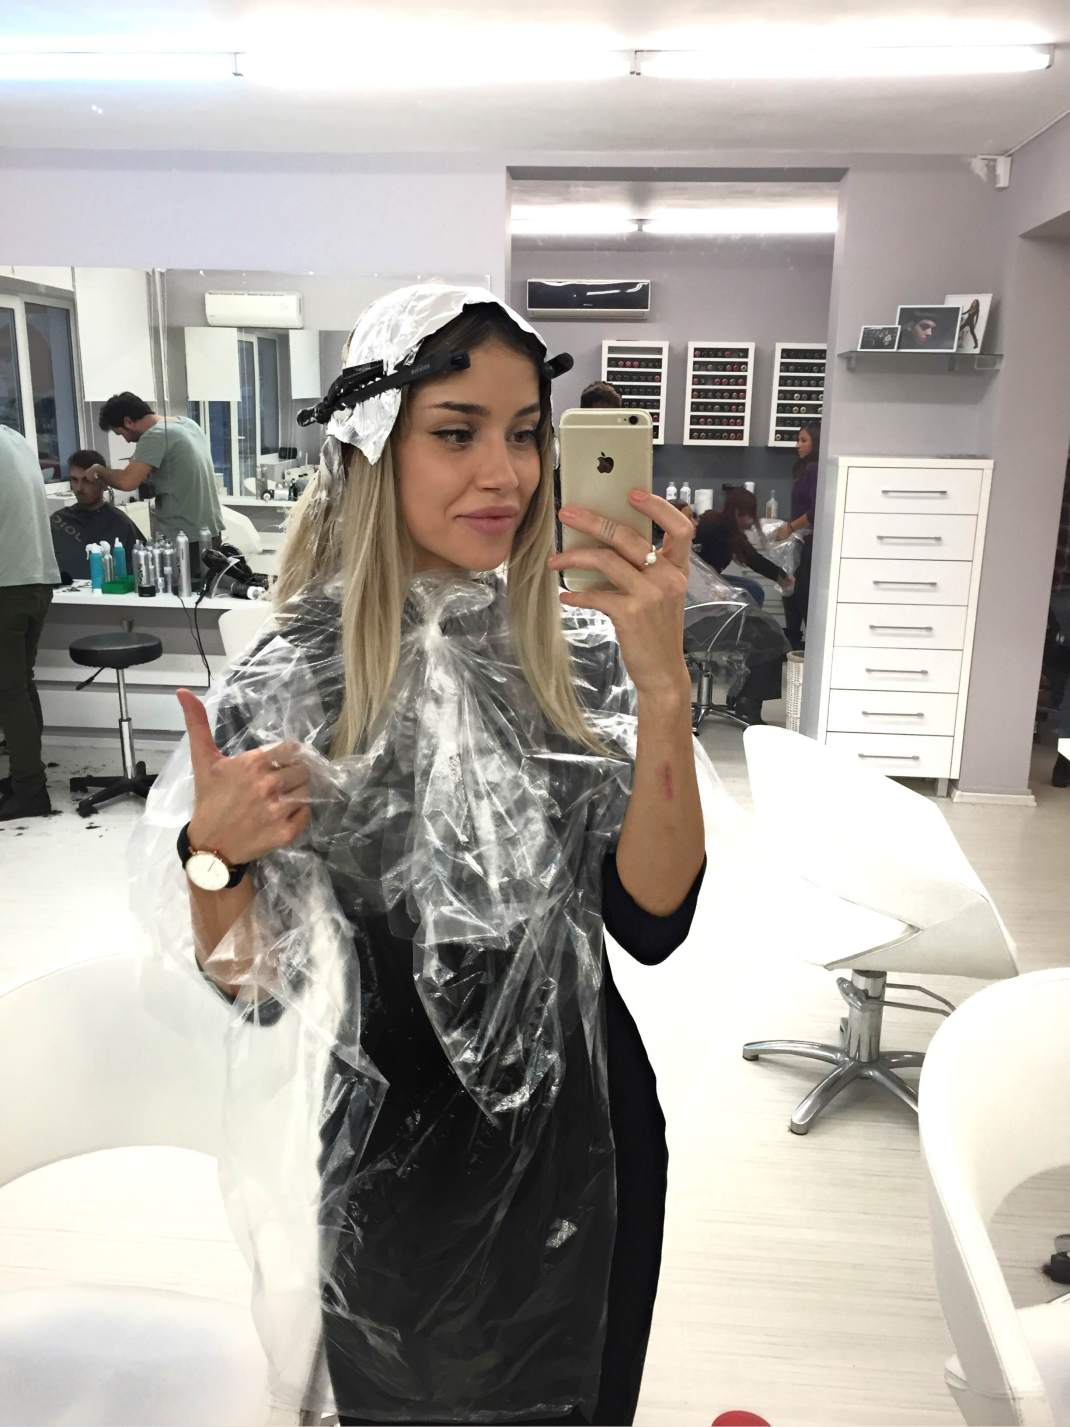 LiveFeed: I'm changing my hair color!